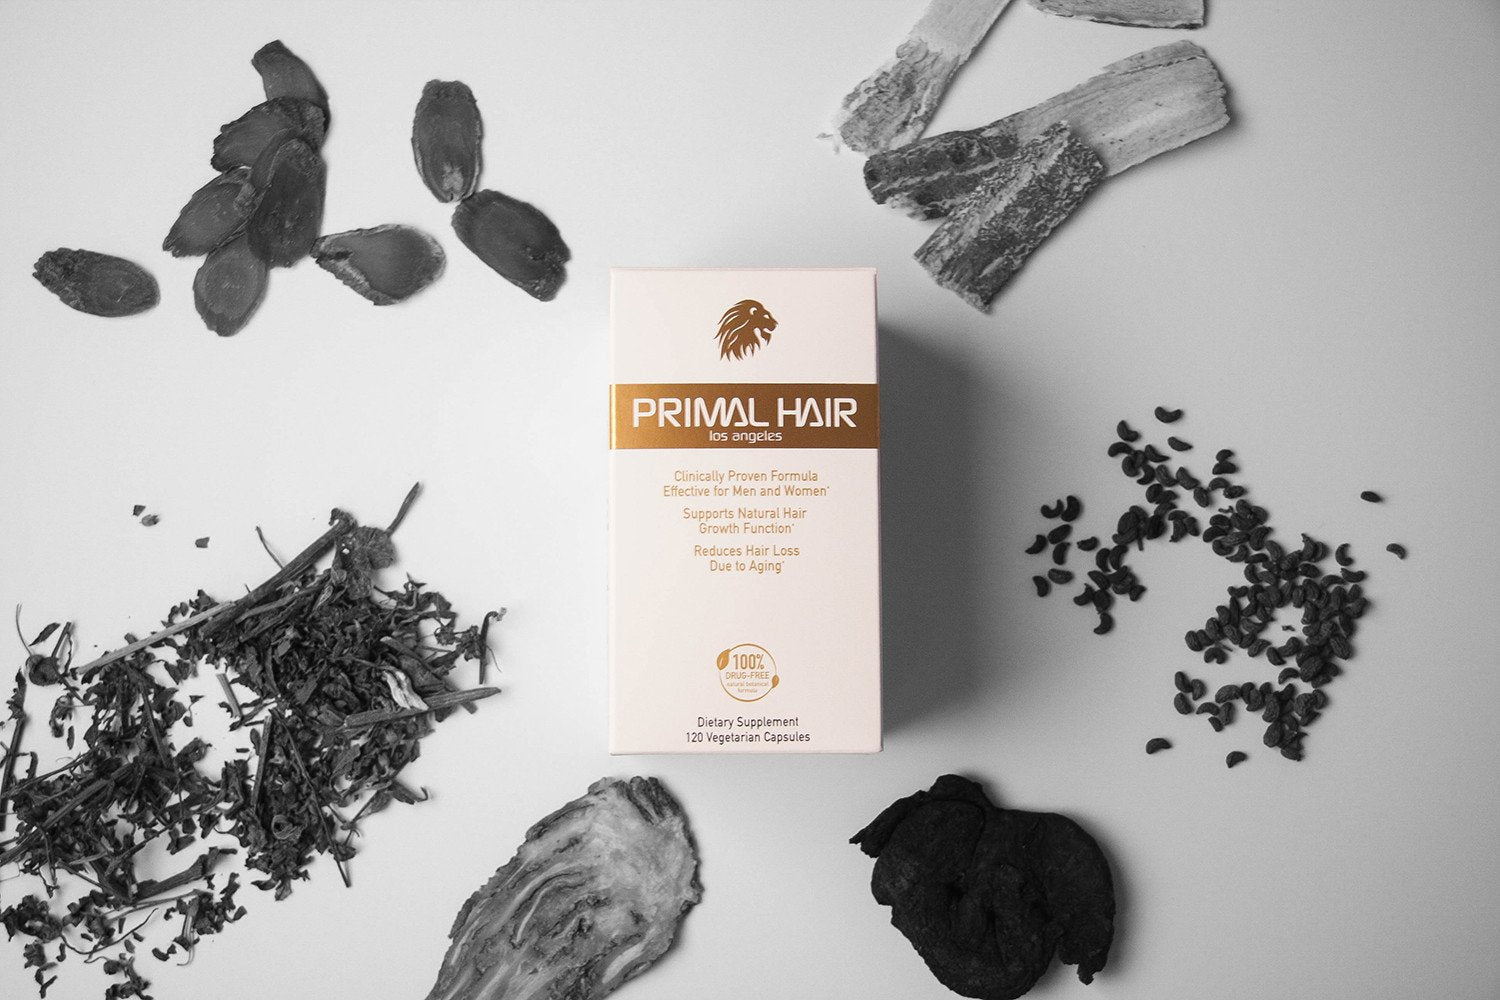 The POWERFUL Ingredients in the PRIMAL HAIR Formula